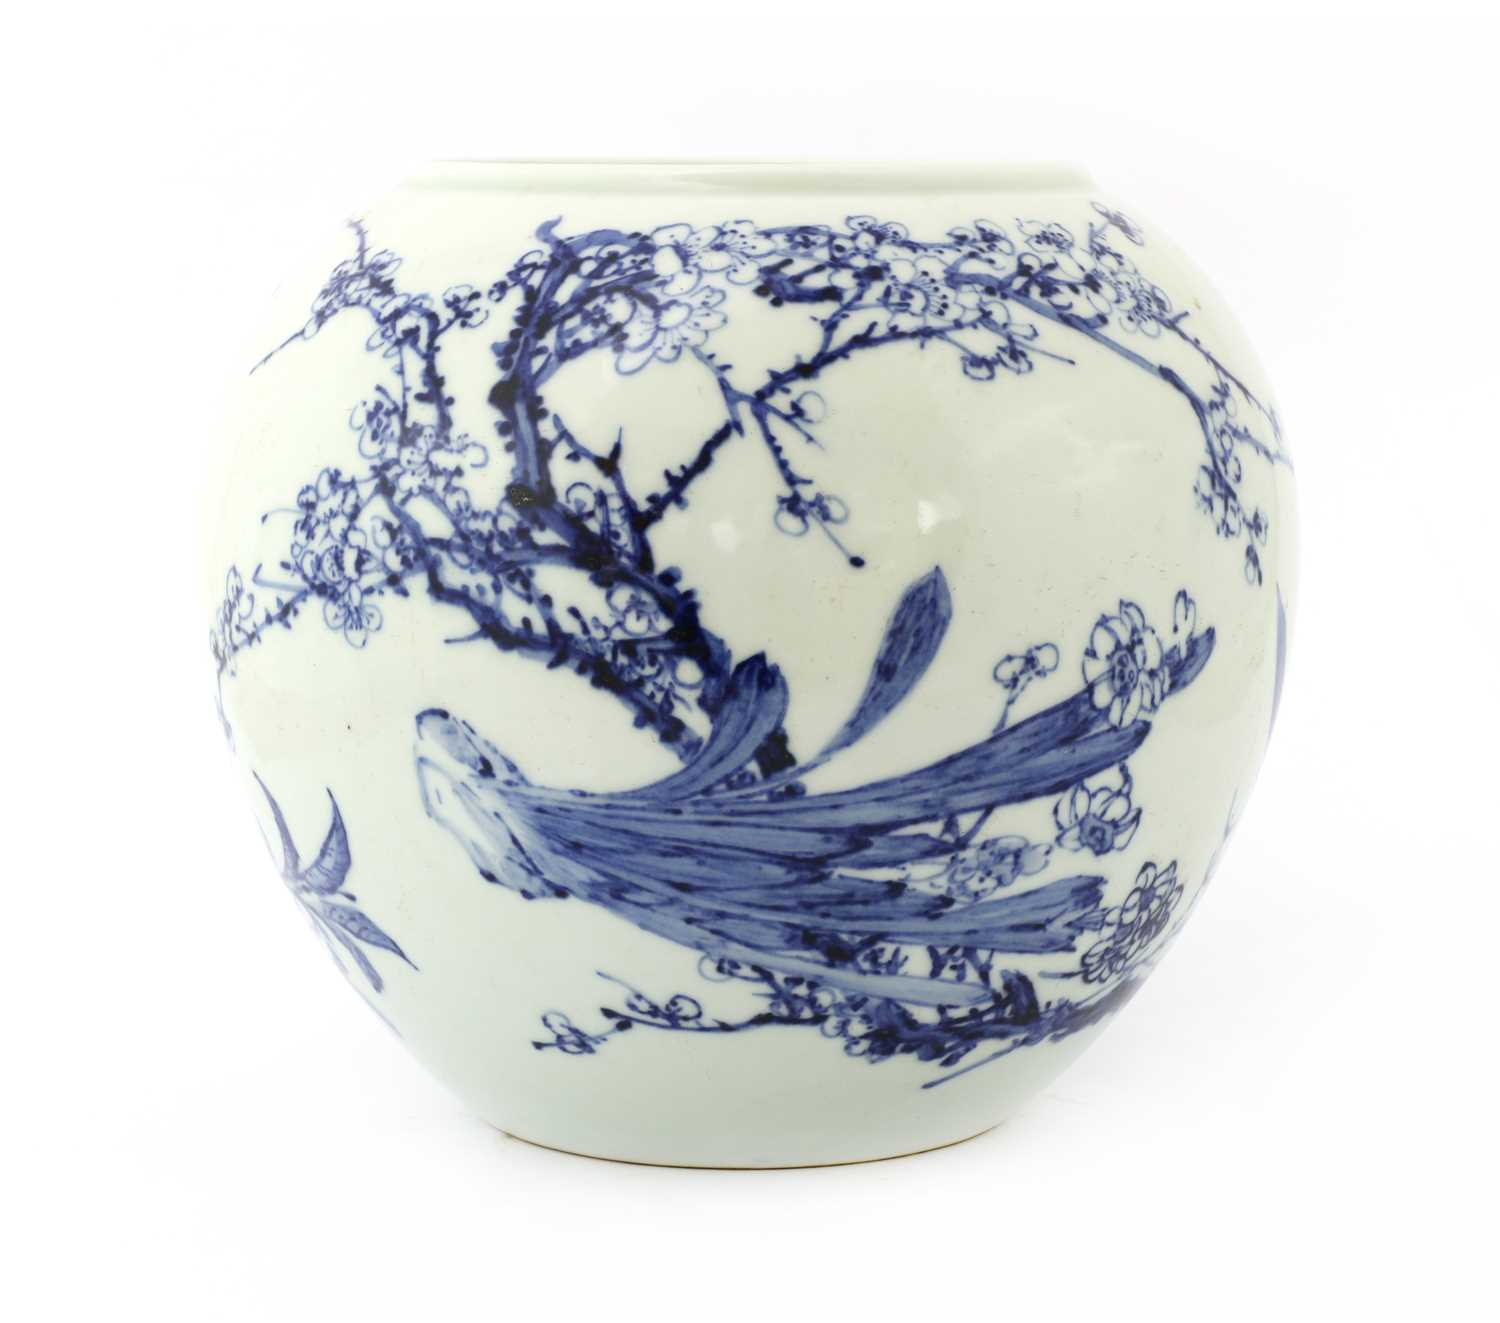 Lot 63 - A Chinese blue and white jar